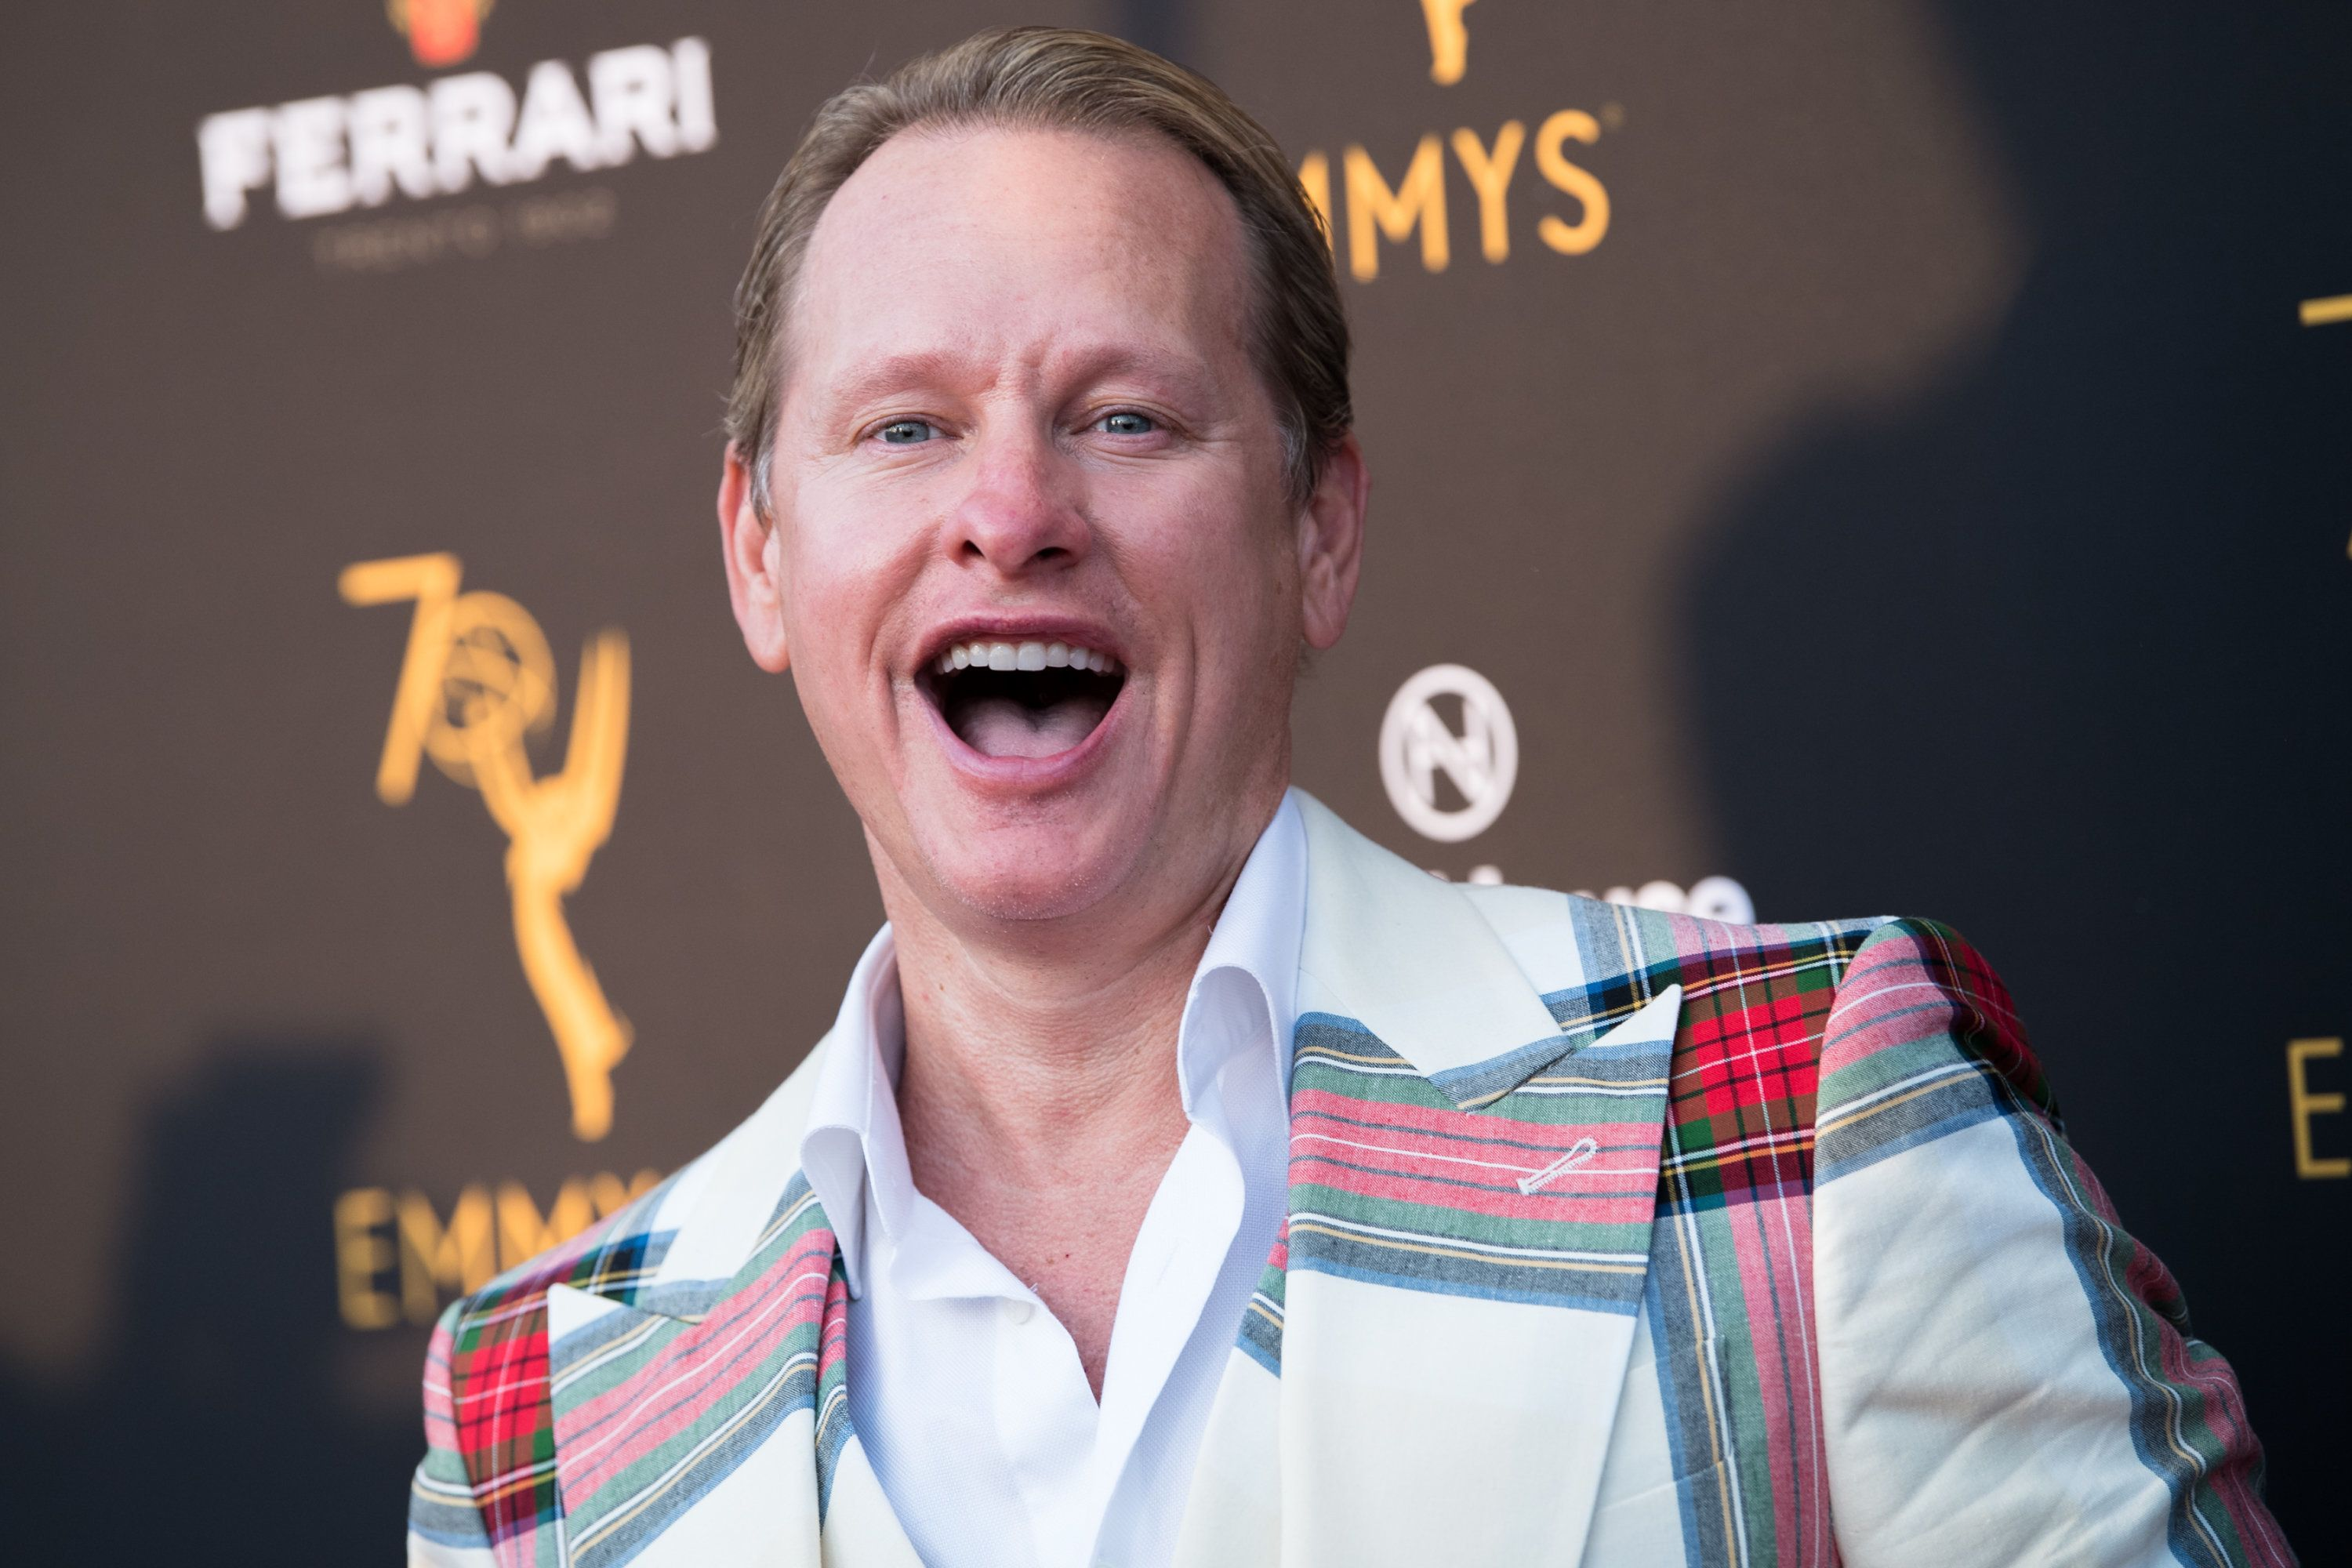 LOS ANGELES, CA - AUGUST 20:  Carson Kressley attends the Television Academy's Performers Peer Group Celebration at NeueHouse Hollywood on August 20, 2018 in Los Angeles, California.  (Photo by Emma McIntyre/Getty Images)